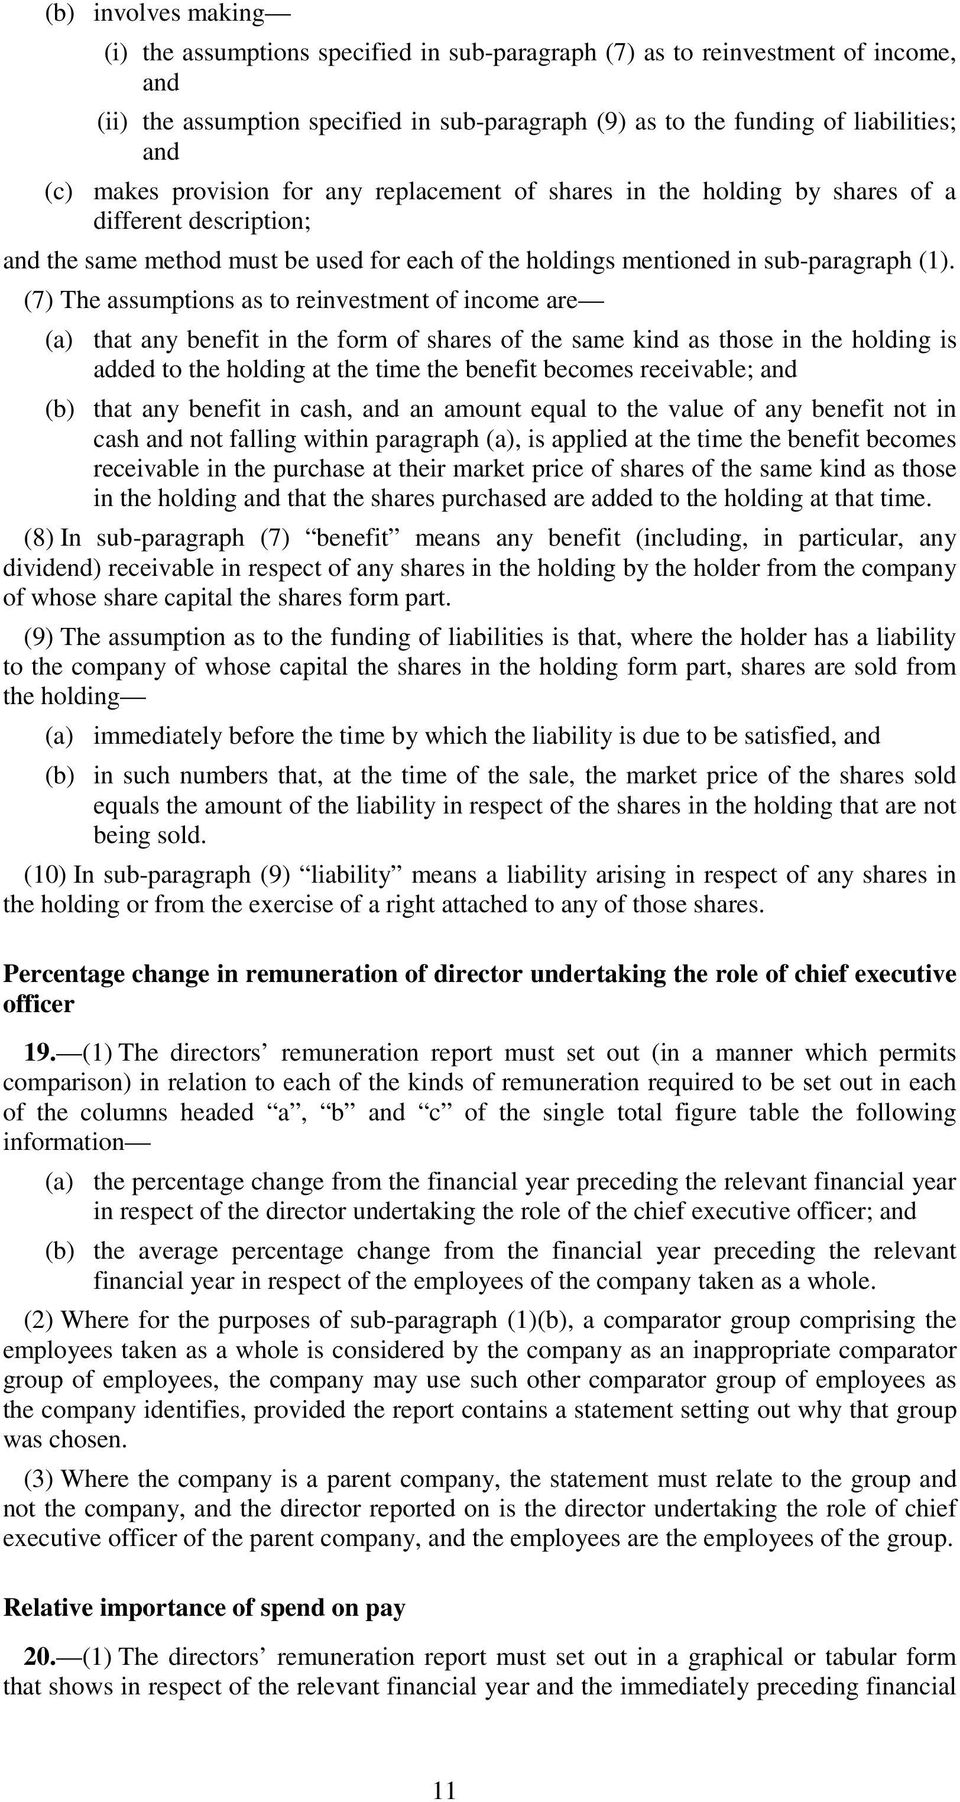 (7) The assumptions as to reinvestment of income are (a) that any benefit in the form of shares of the same kind as those in the holding is added to the holding at the time the benefit becomes